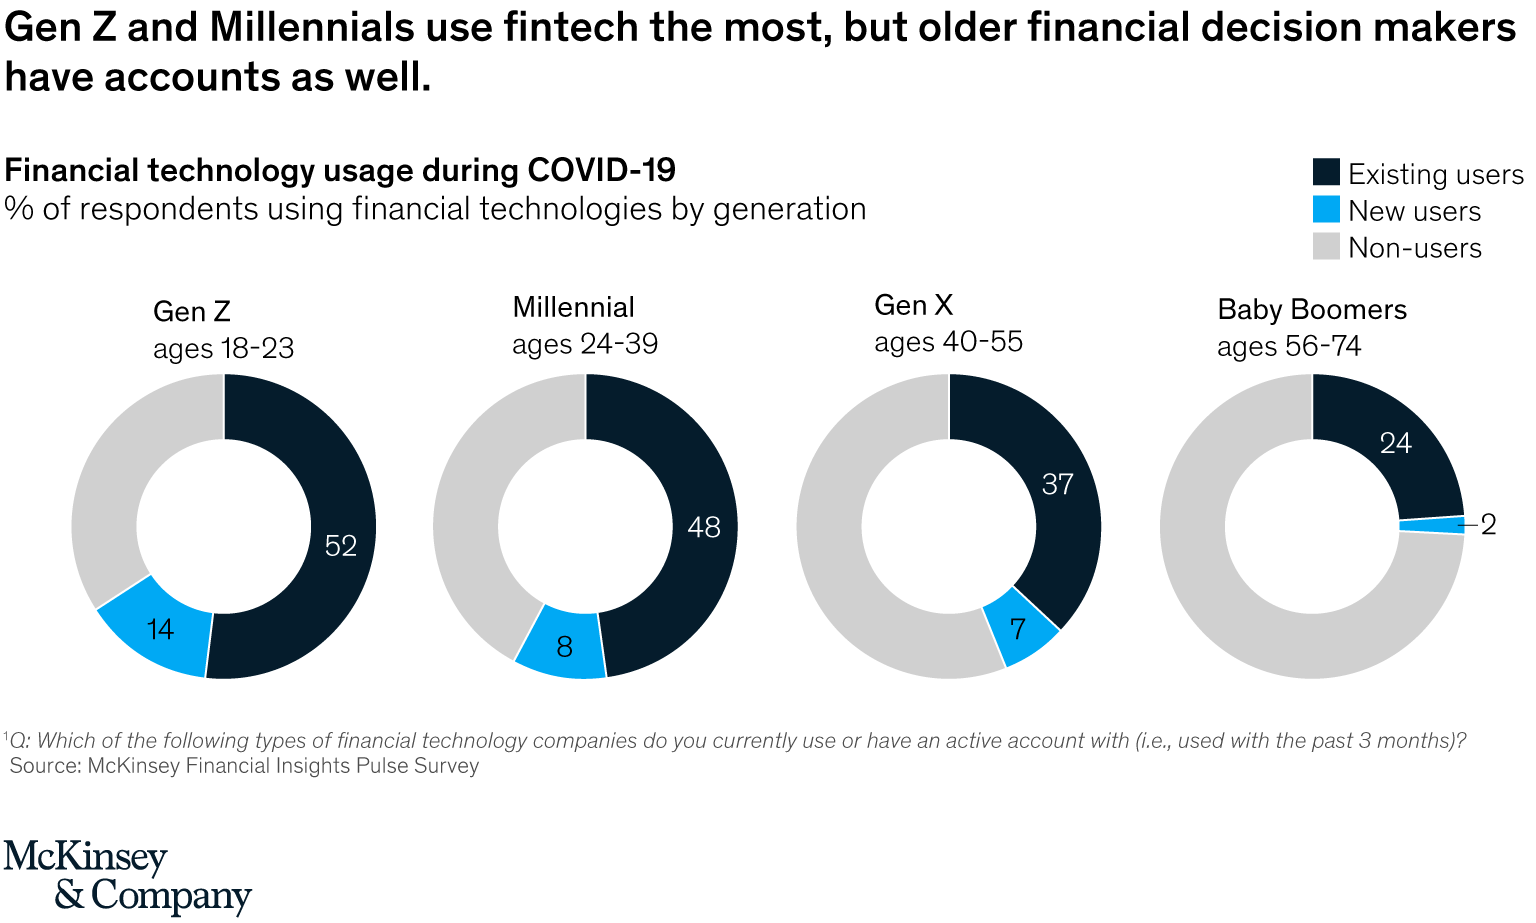 Financial technology usage during COVID-19 by generation, Source- McKinsey Financial Insights Pulse Survey